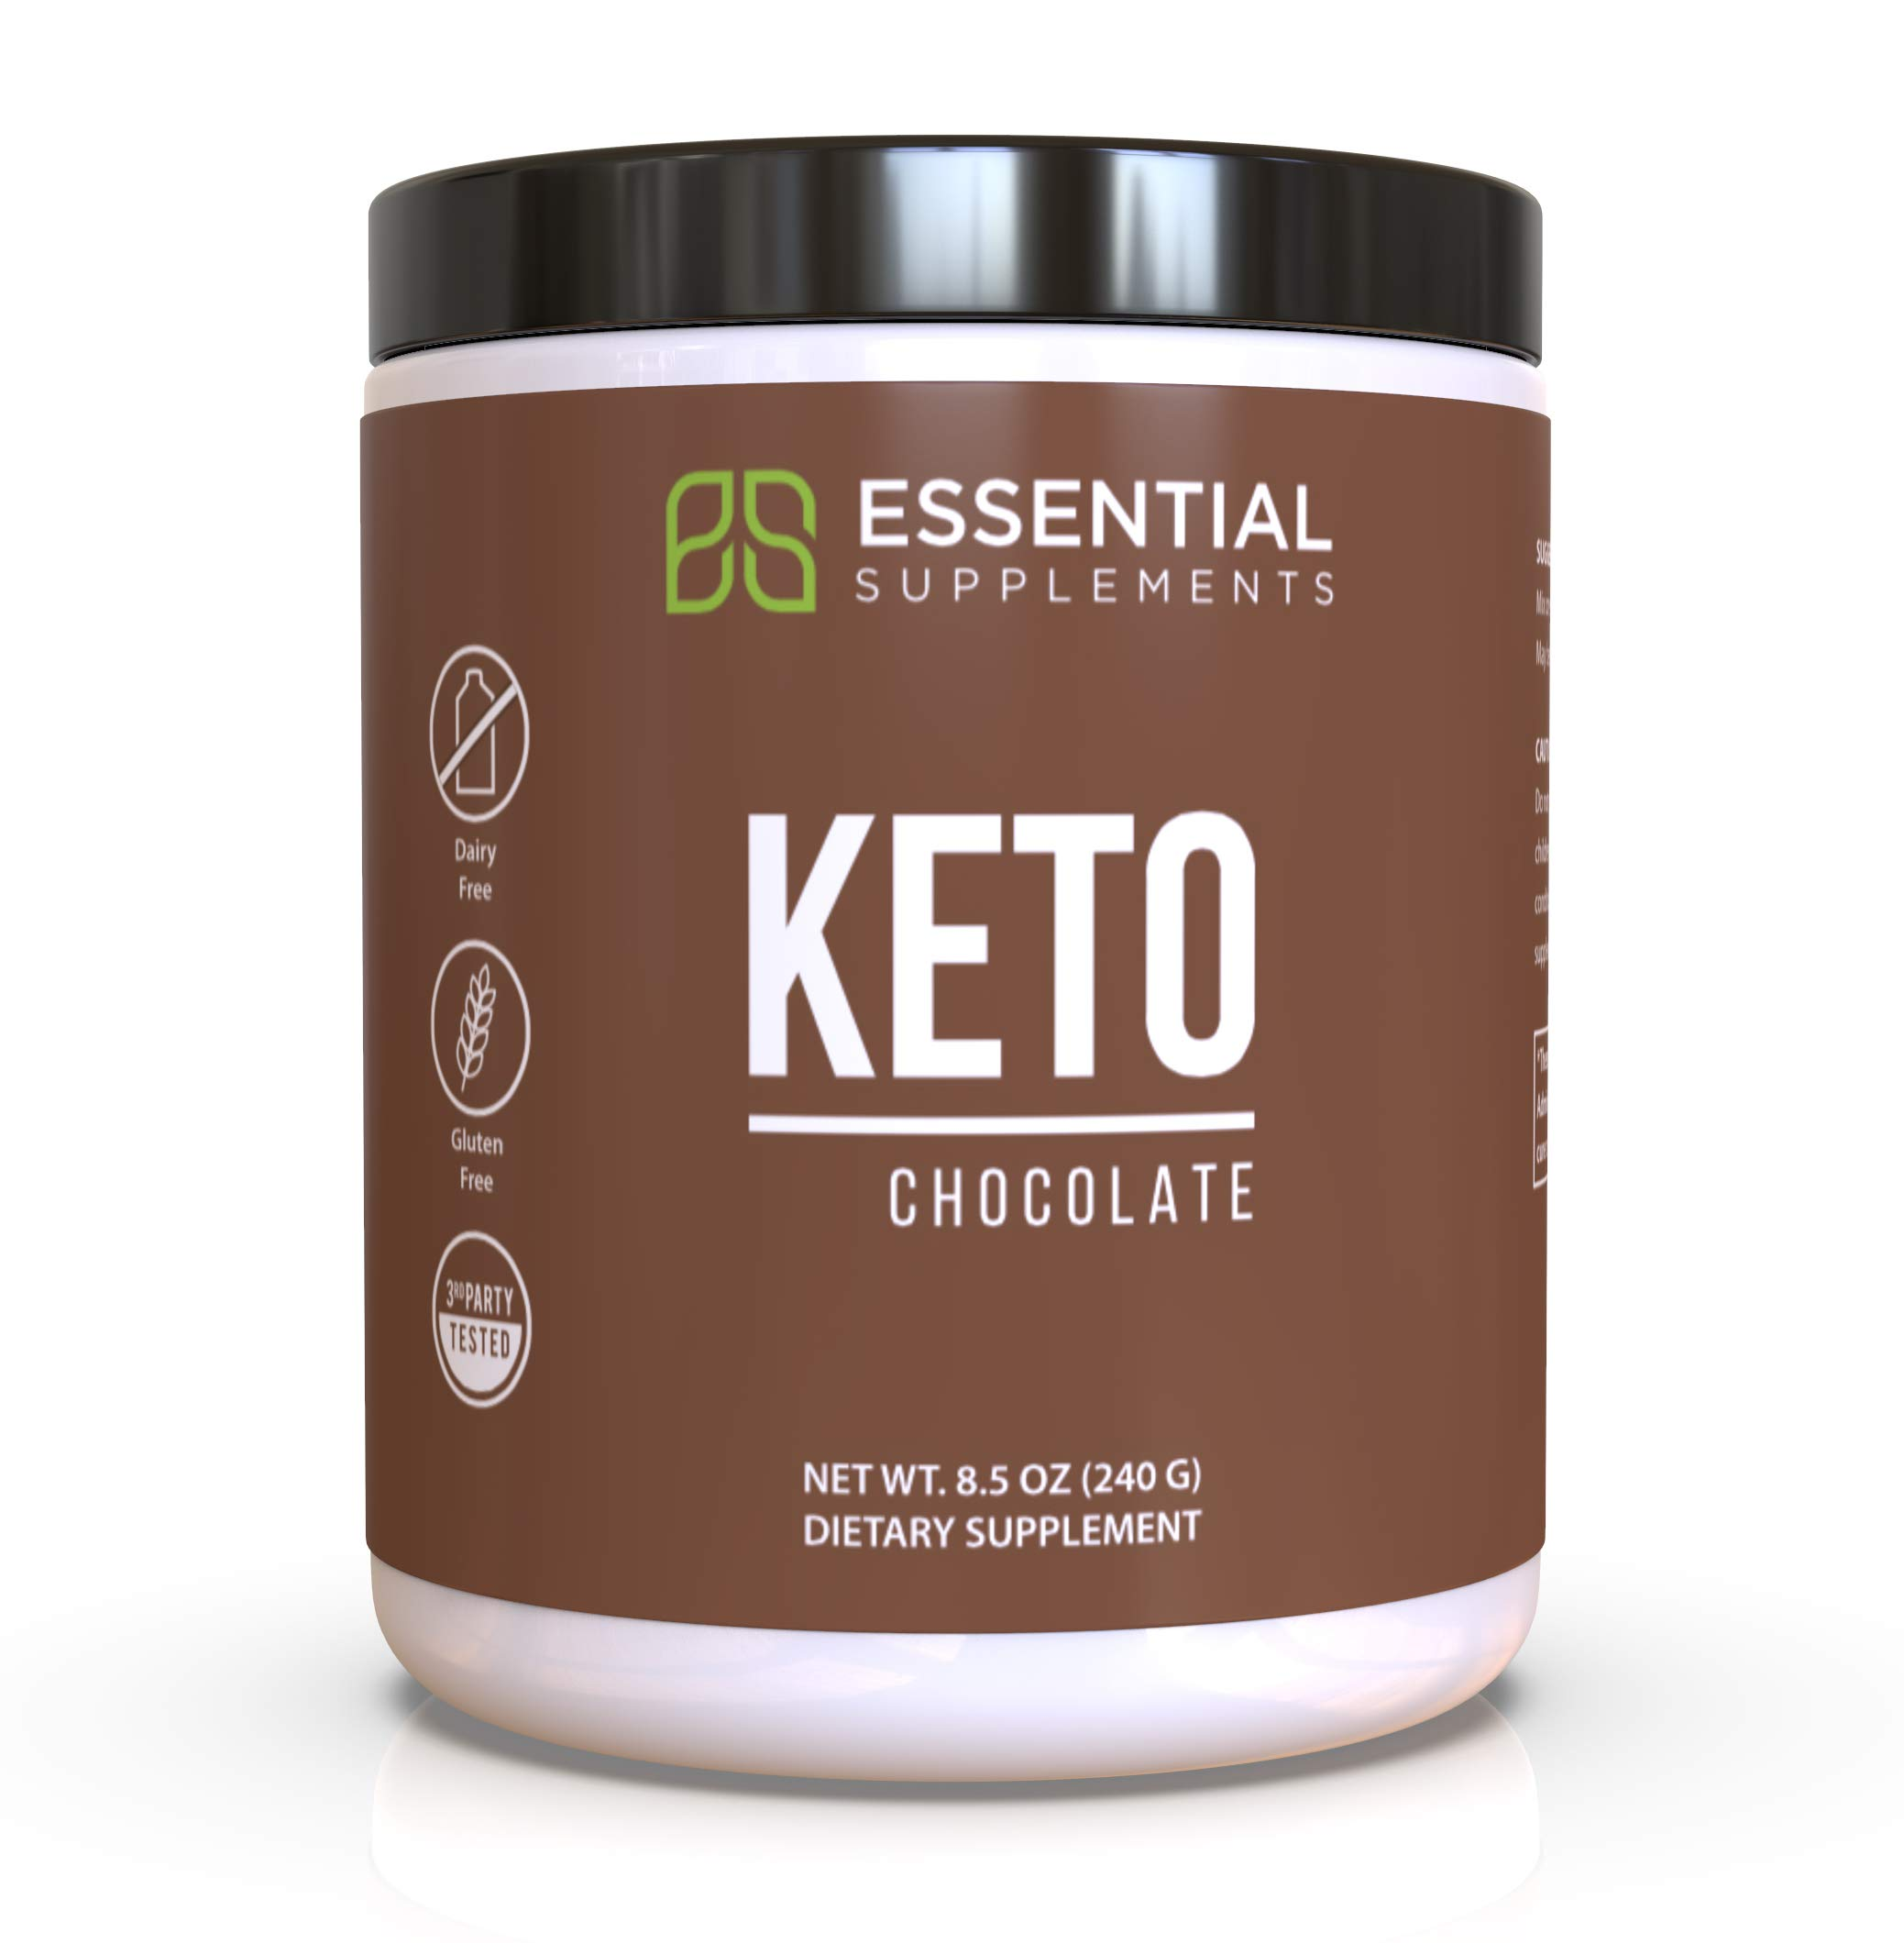 Essential Supplements® Exogenous Ketones Keto BHB Chocolate Powder for Ketogenic Diet   Supports Weight Loss, Energy, Focus and Ketosis   Beta-Hydroxybutyrate Ketone Supplement